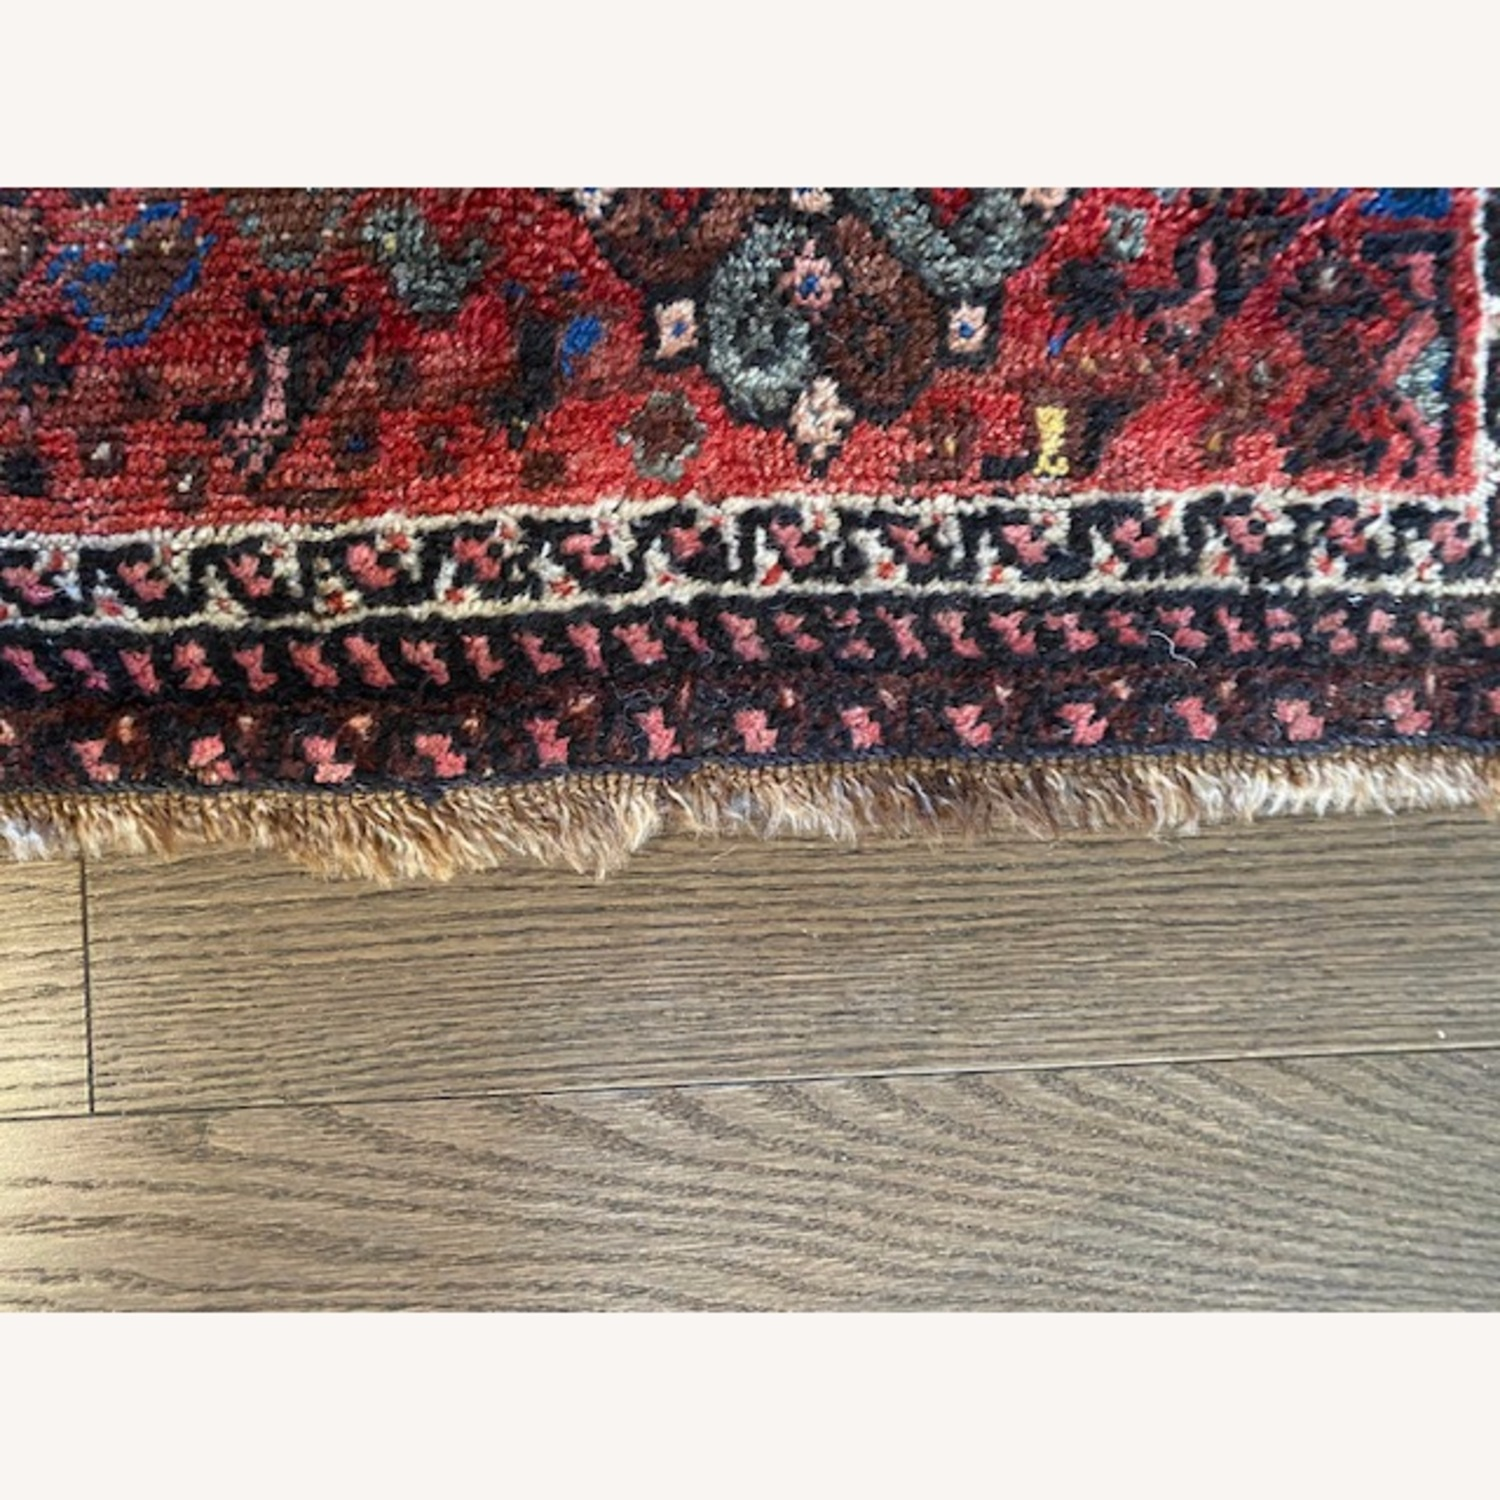 Vintage Persian Hand-knotted Wool Tribal Rug - image-3